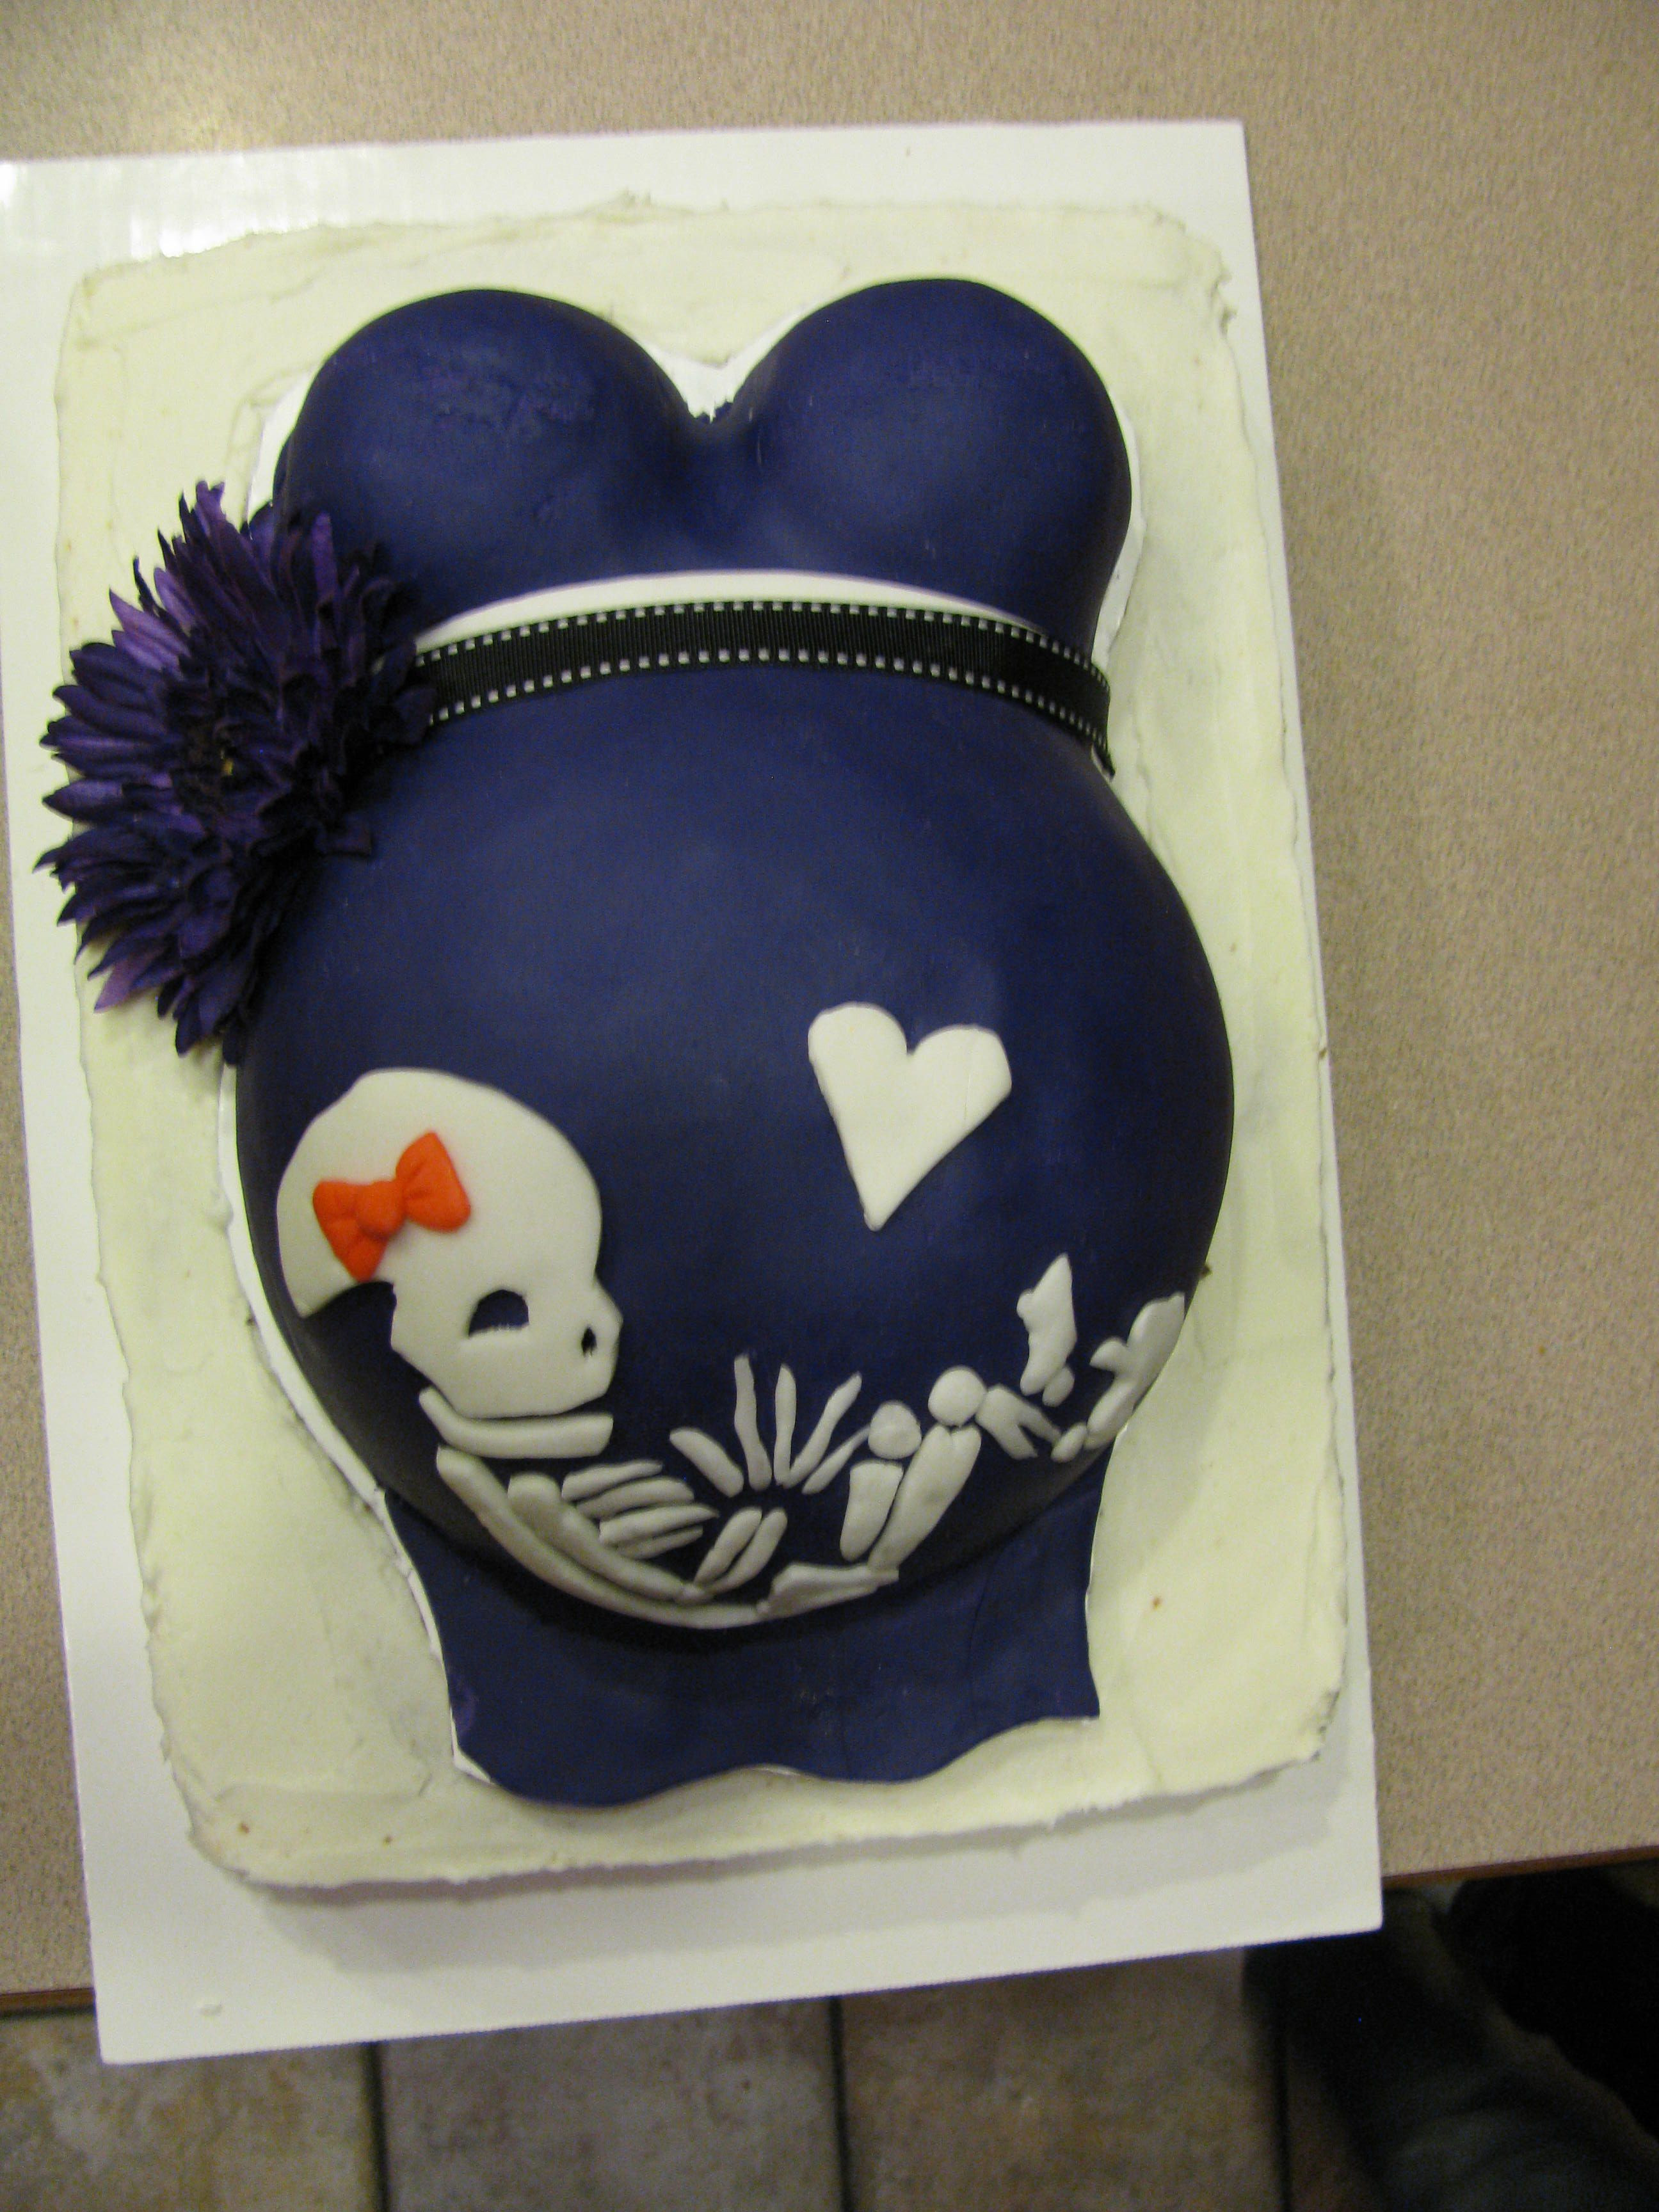 Halloween Baby Shower Cakes  Baby Shower Cakes Halloween Baby Shower Cakes Ideas